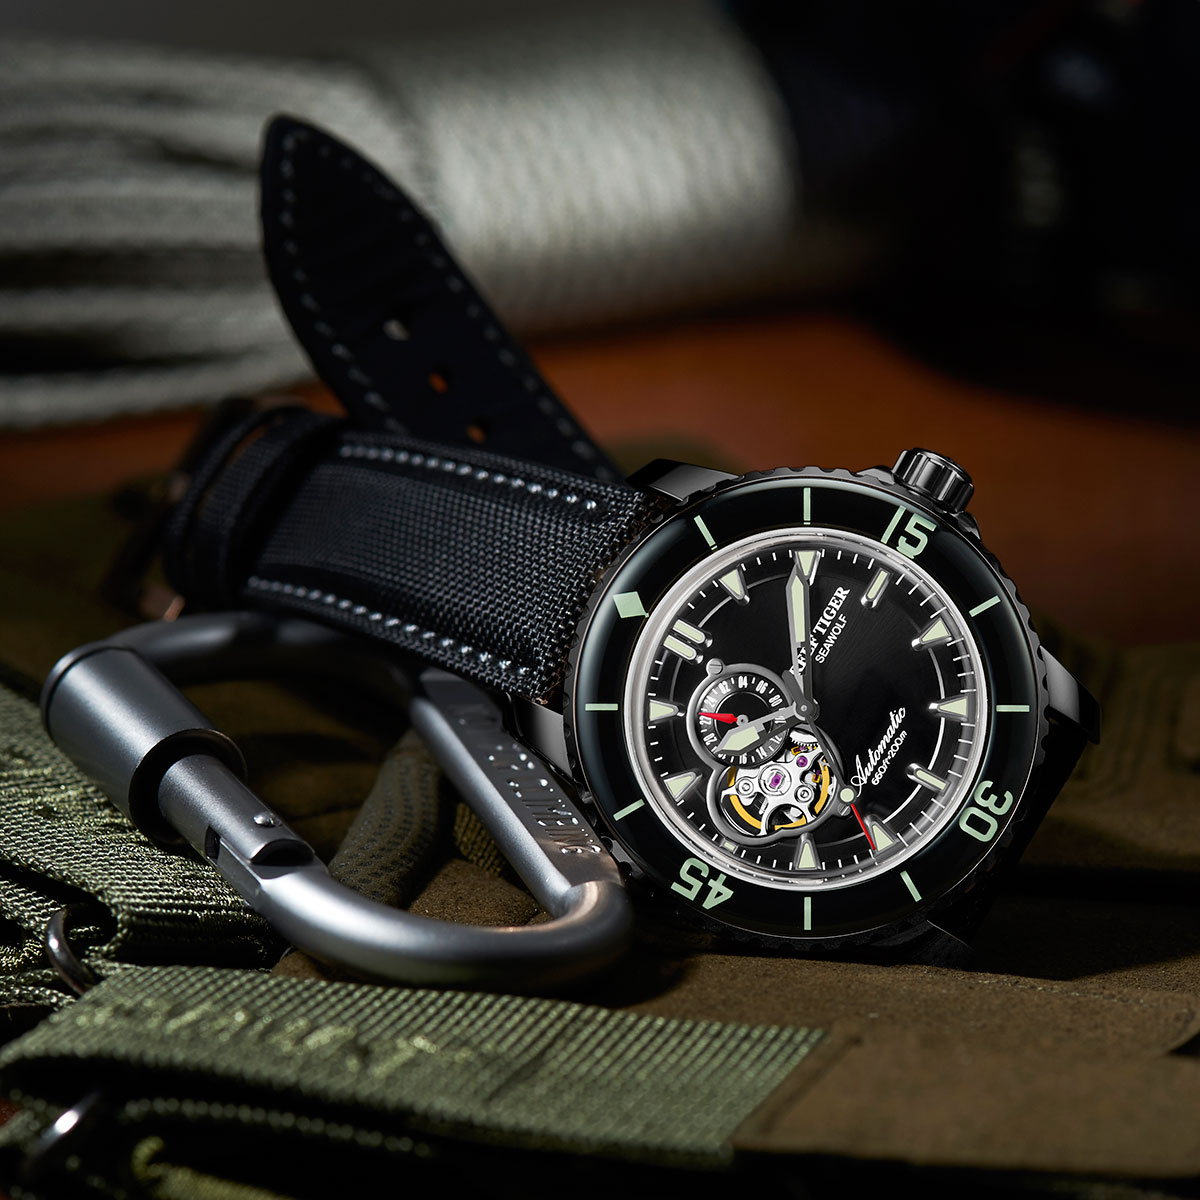 Reef Tiger Sea Wolf Dress Automatic Watch PVD Black Dial Black Nylon/Leather Strap RGA3039-BBB